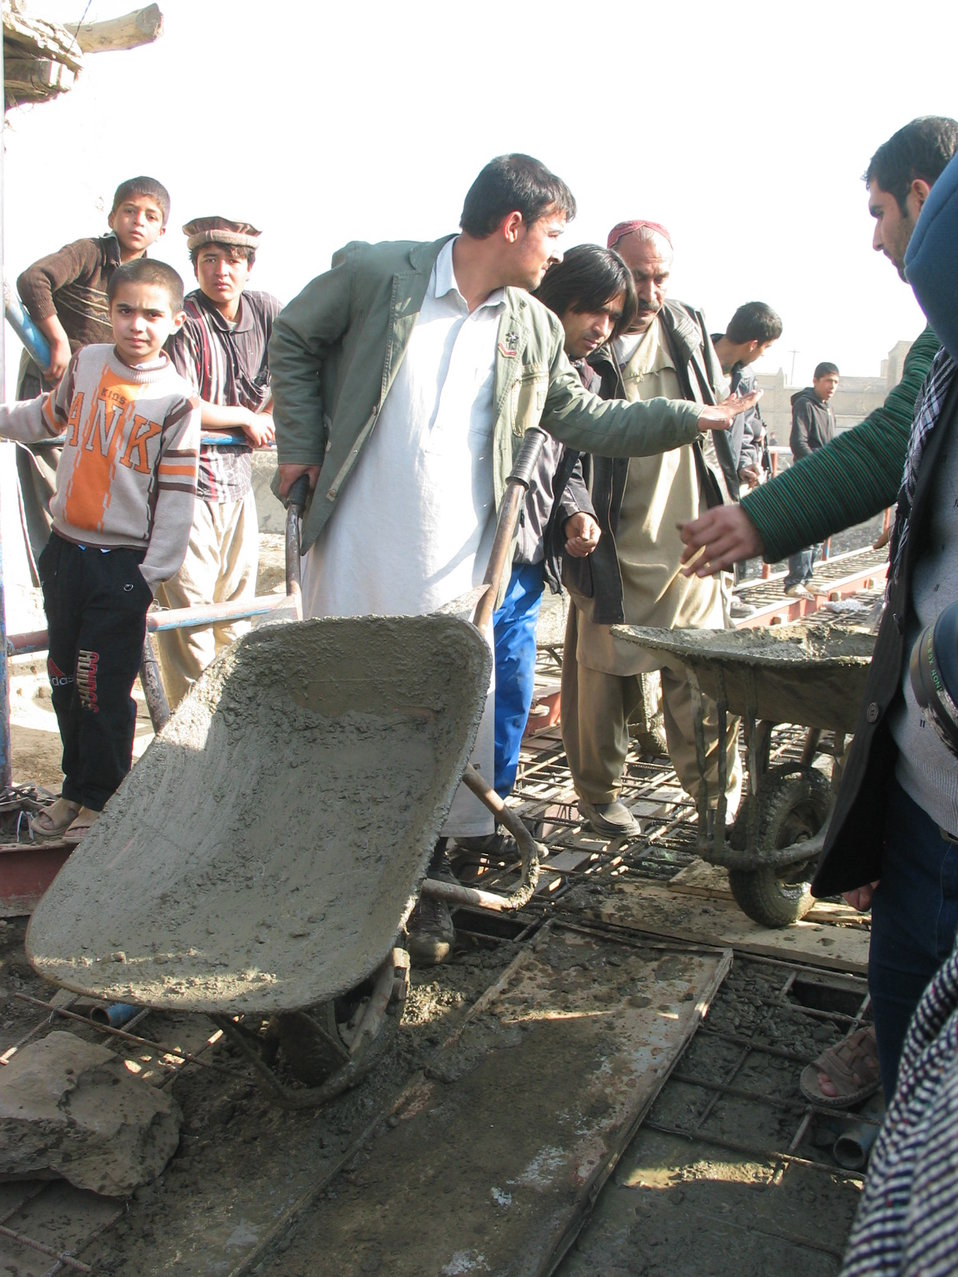 Kabul River Bridge Renovation, December 3, 2010